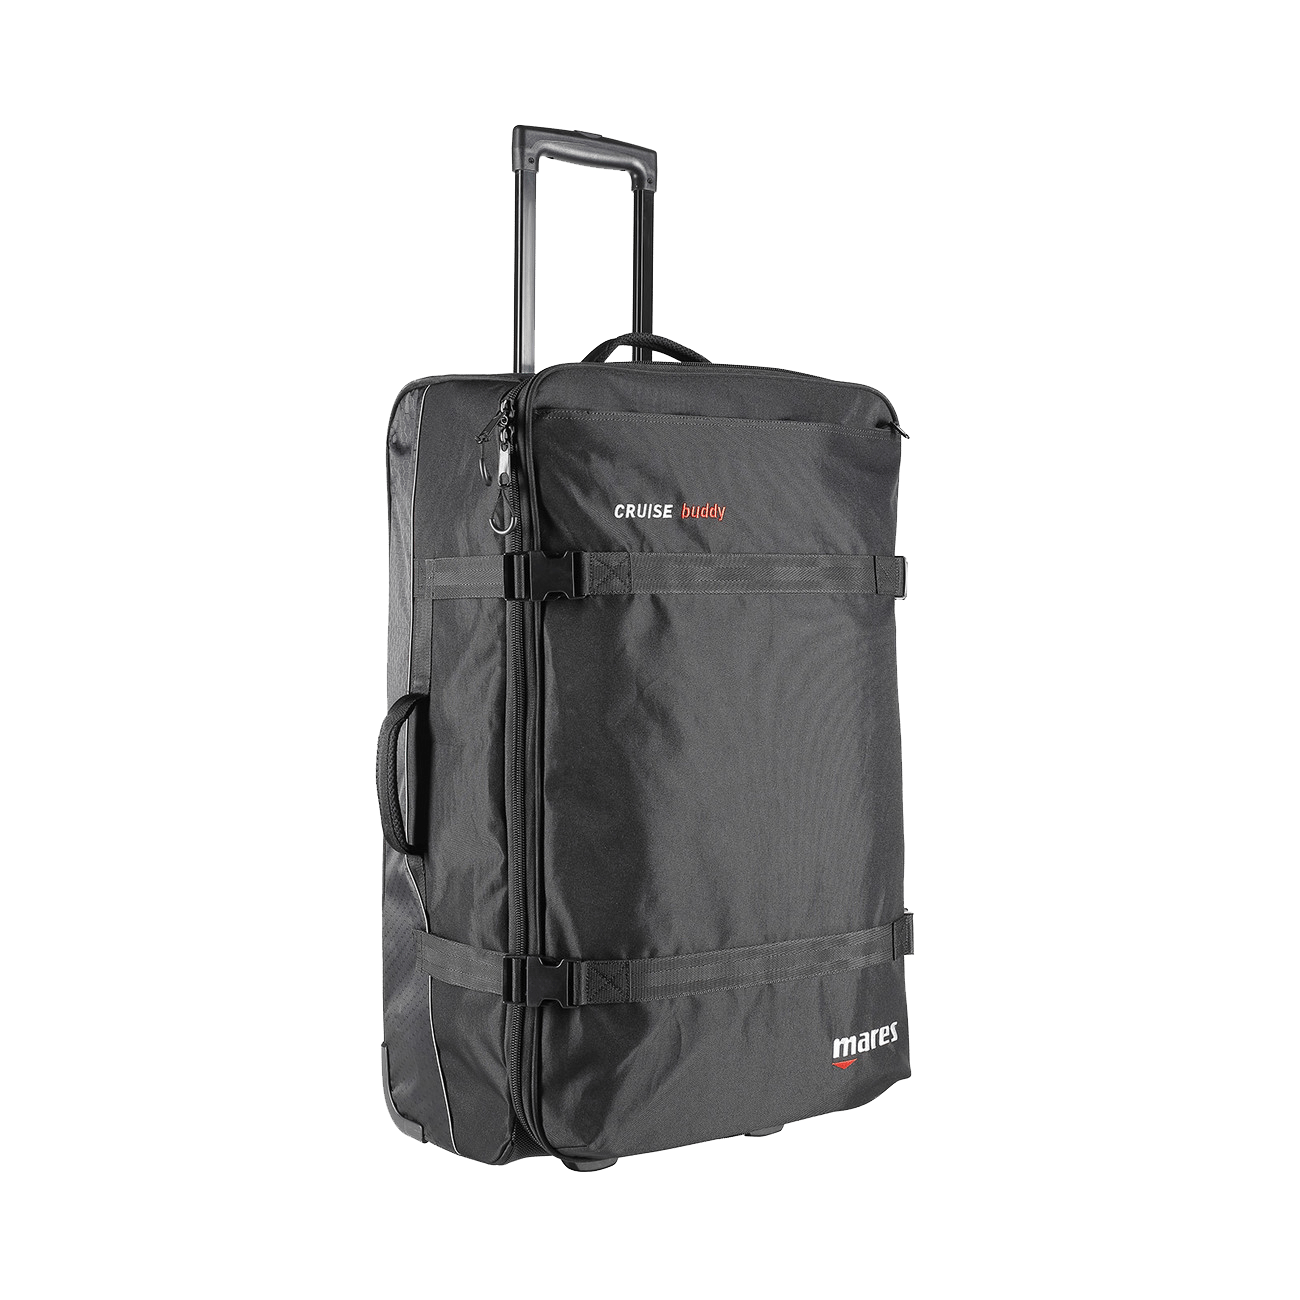 Mares Cruise Buddy Roller Bag | Mares Bags | Mares Singapore